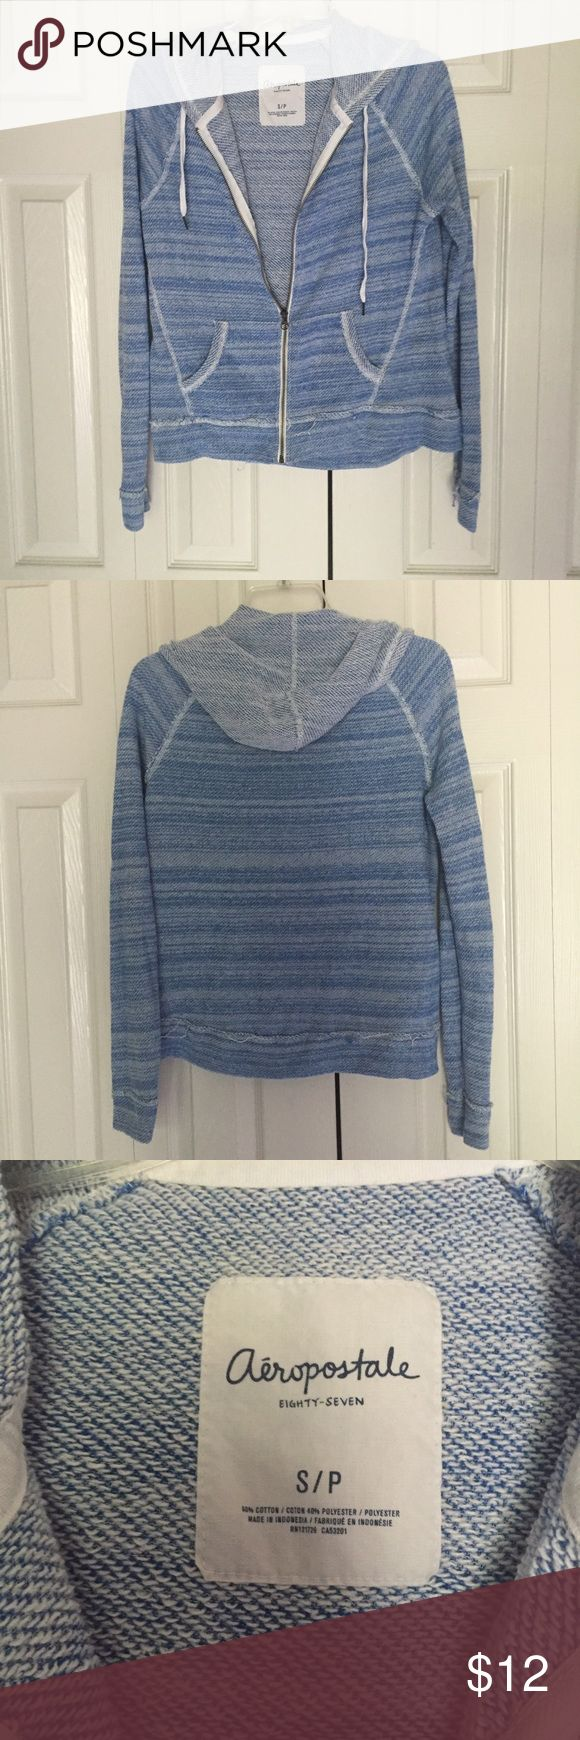 Blue & White Heathered/Striped Zip Up Hoodie Zip up hoodie from Aeropostale. Barely worn. Knit/distressed look. Pattern is striped or slightly heathered. Has drawstrings and pockets! Aeropostale Tops Sweatshirts & Hoodies